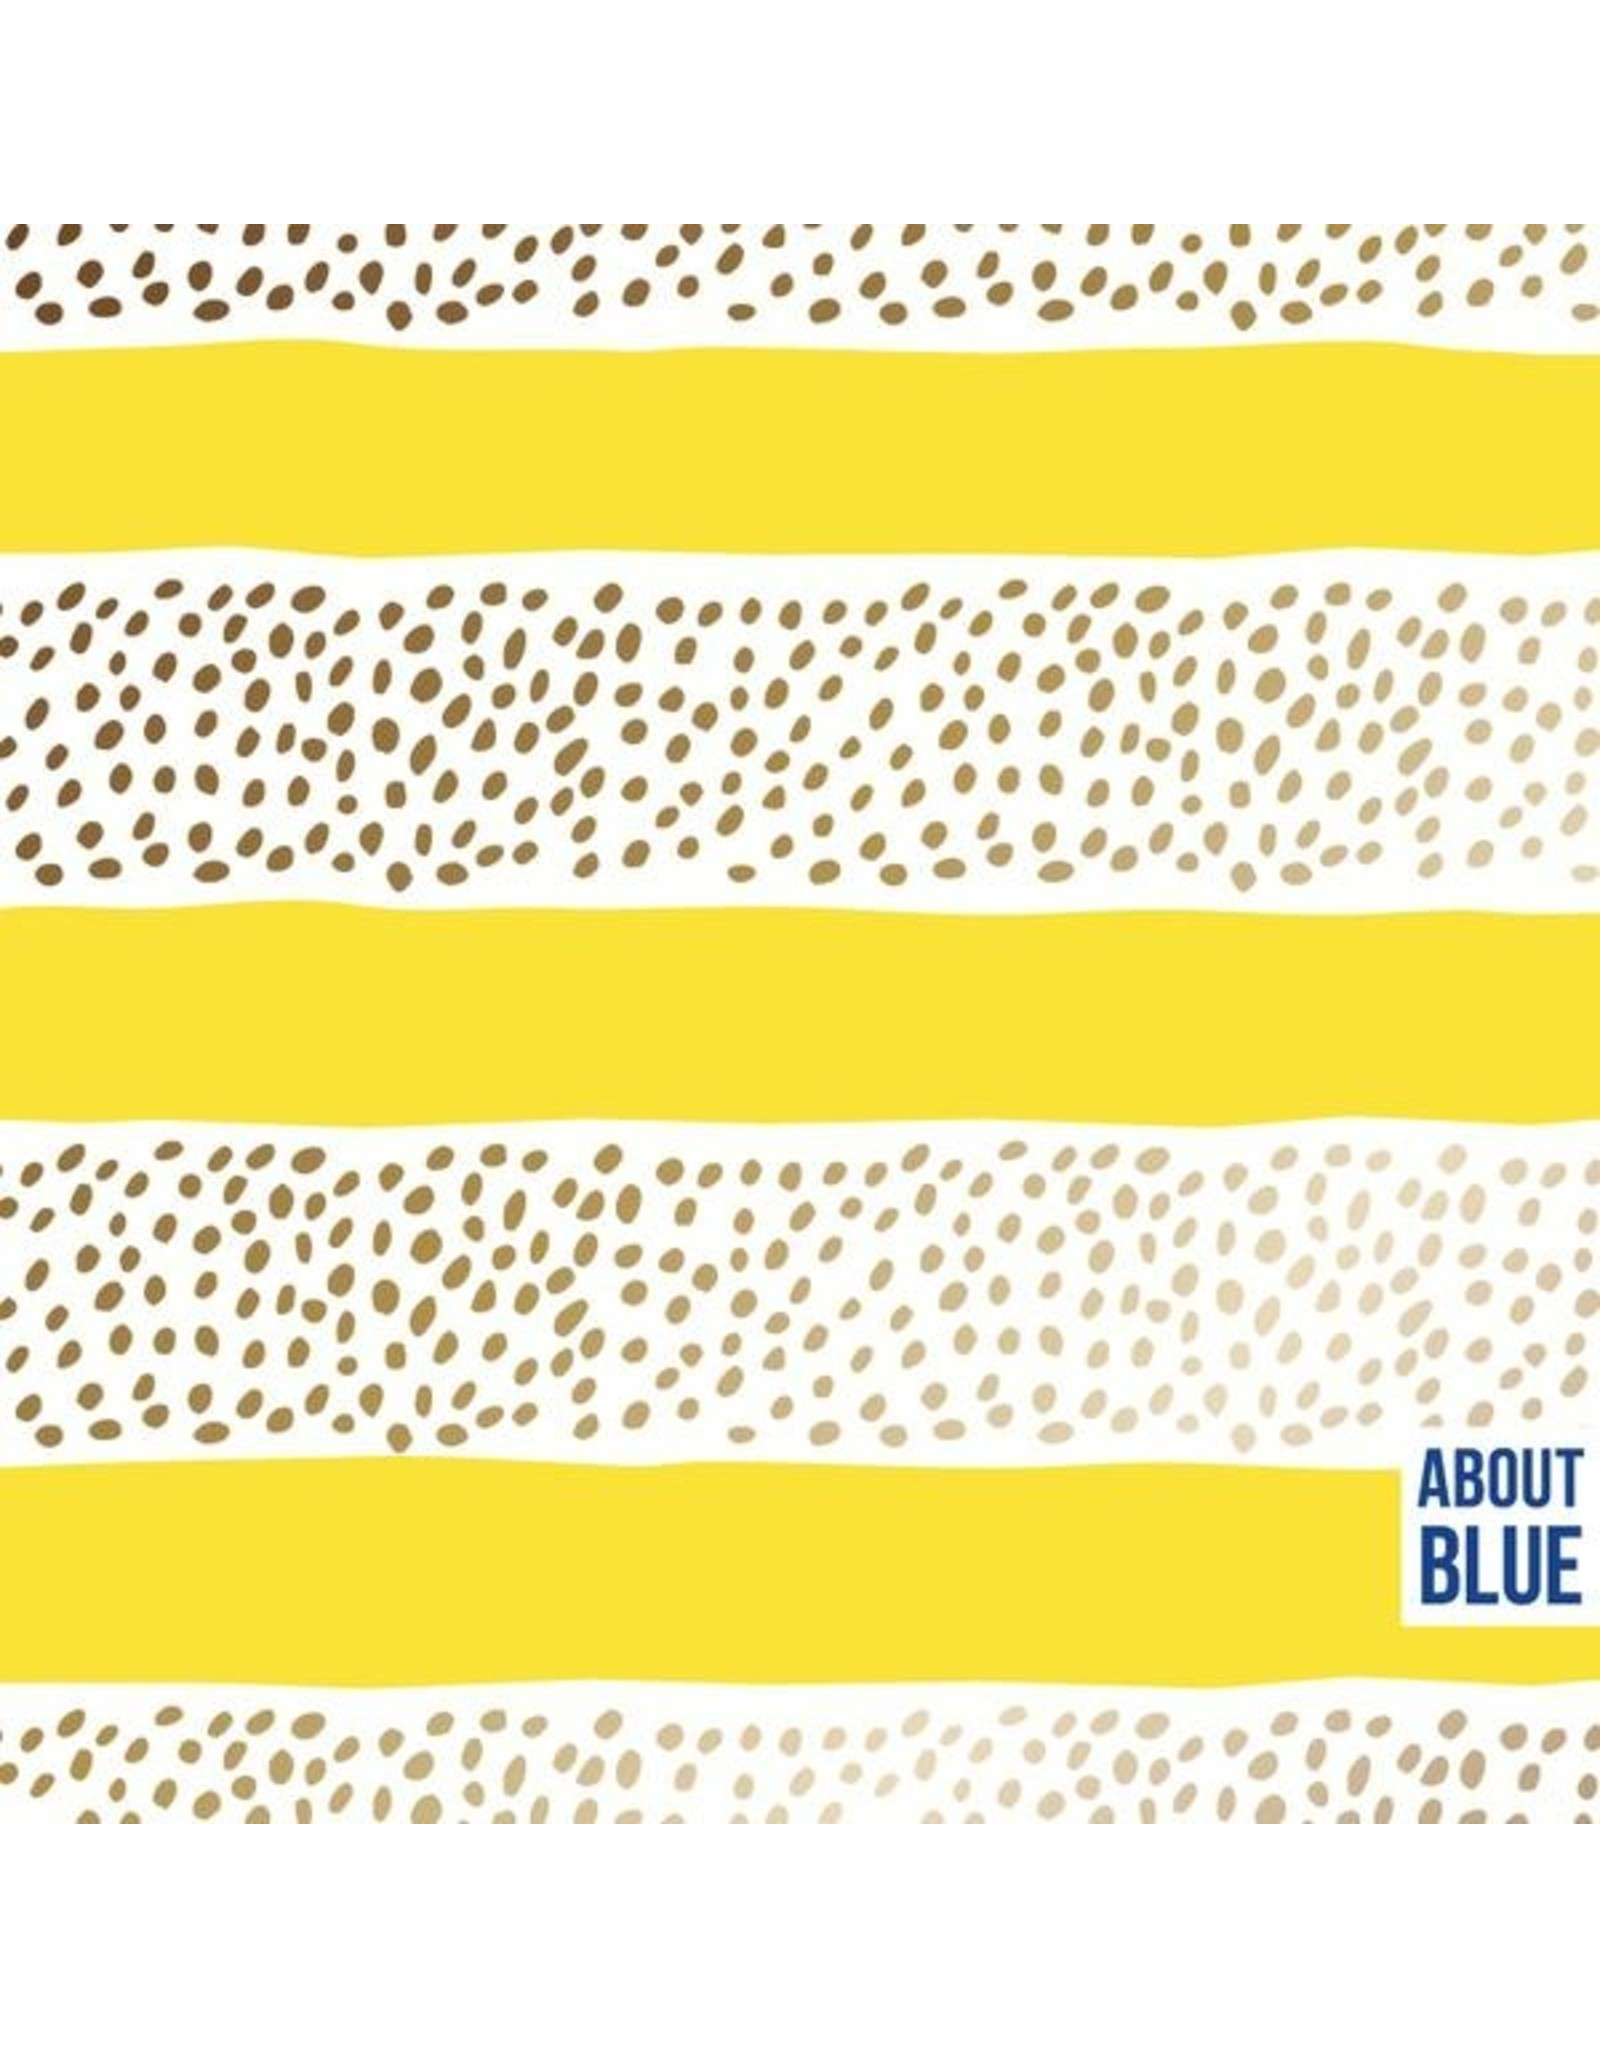 About Blue Fabrics French Terry - Golden Rain